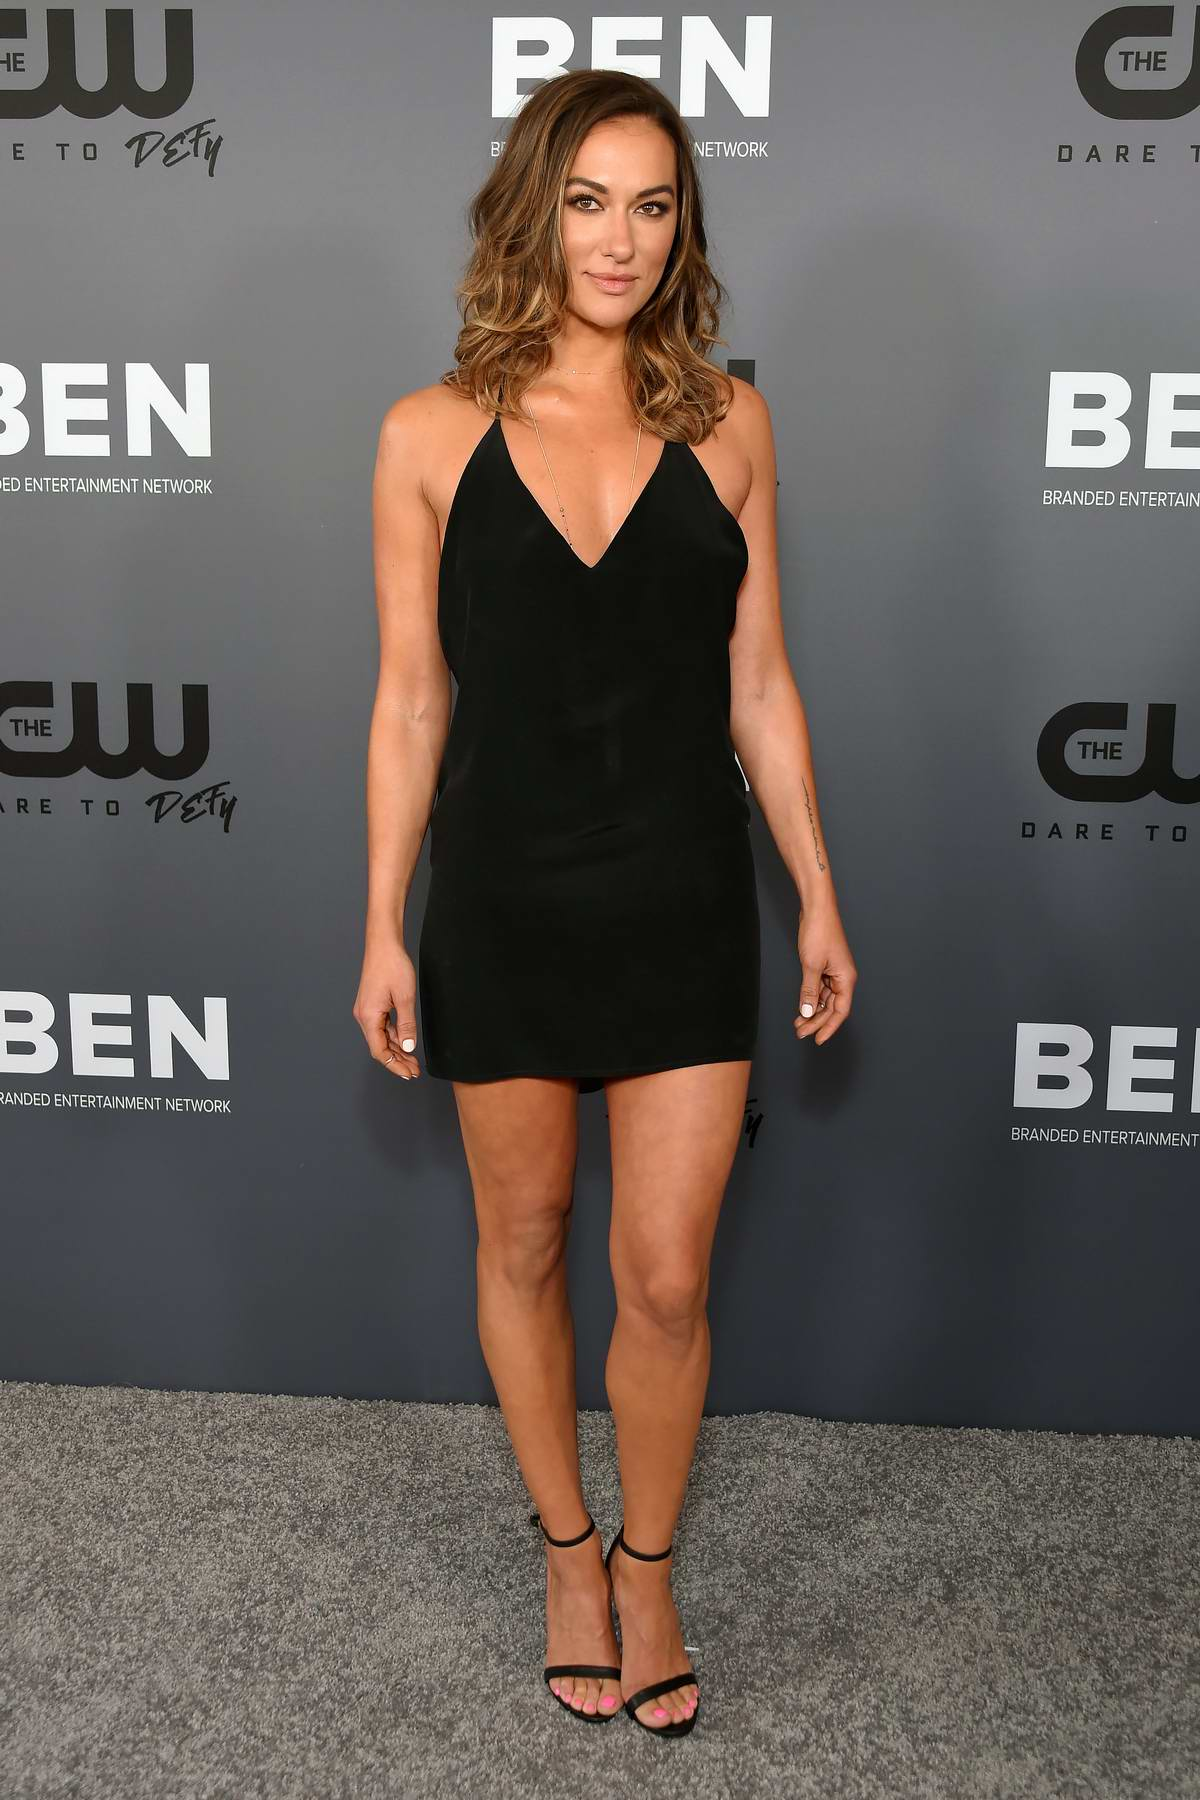 Tasya Teles attends The CW's All Star Party during 2019 TCA Summer Press Tour in Los Angeles